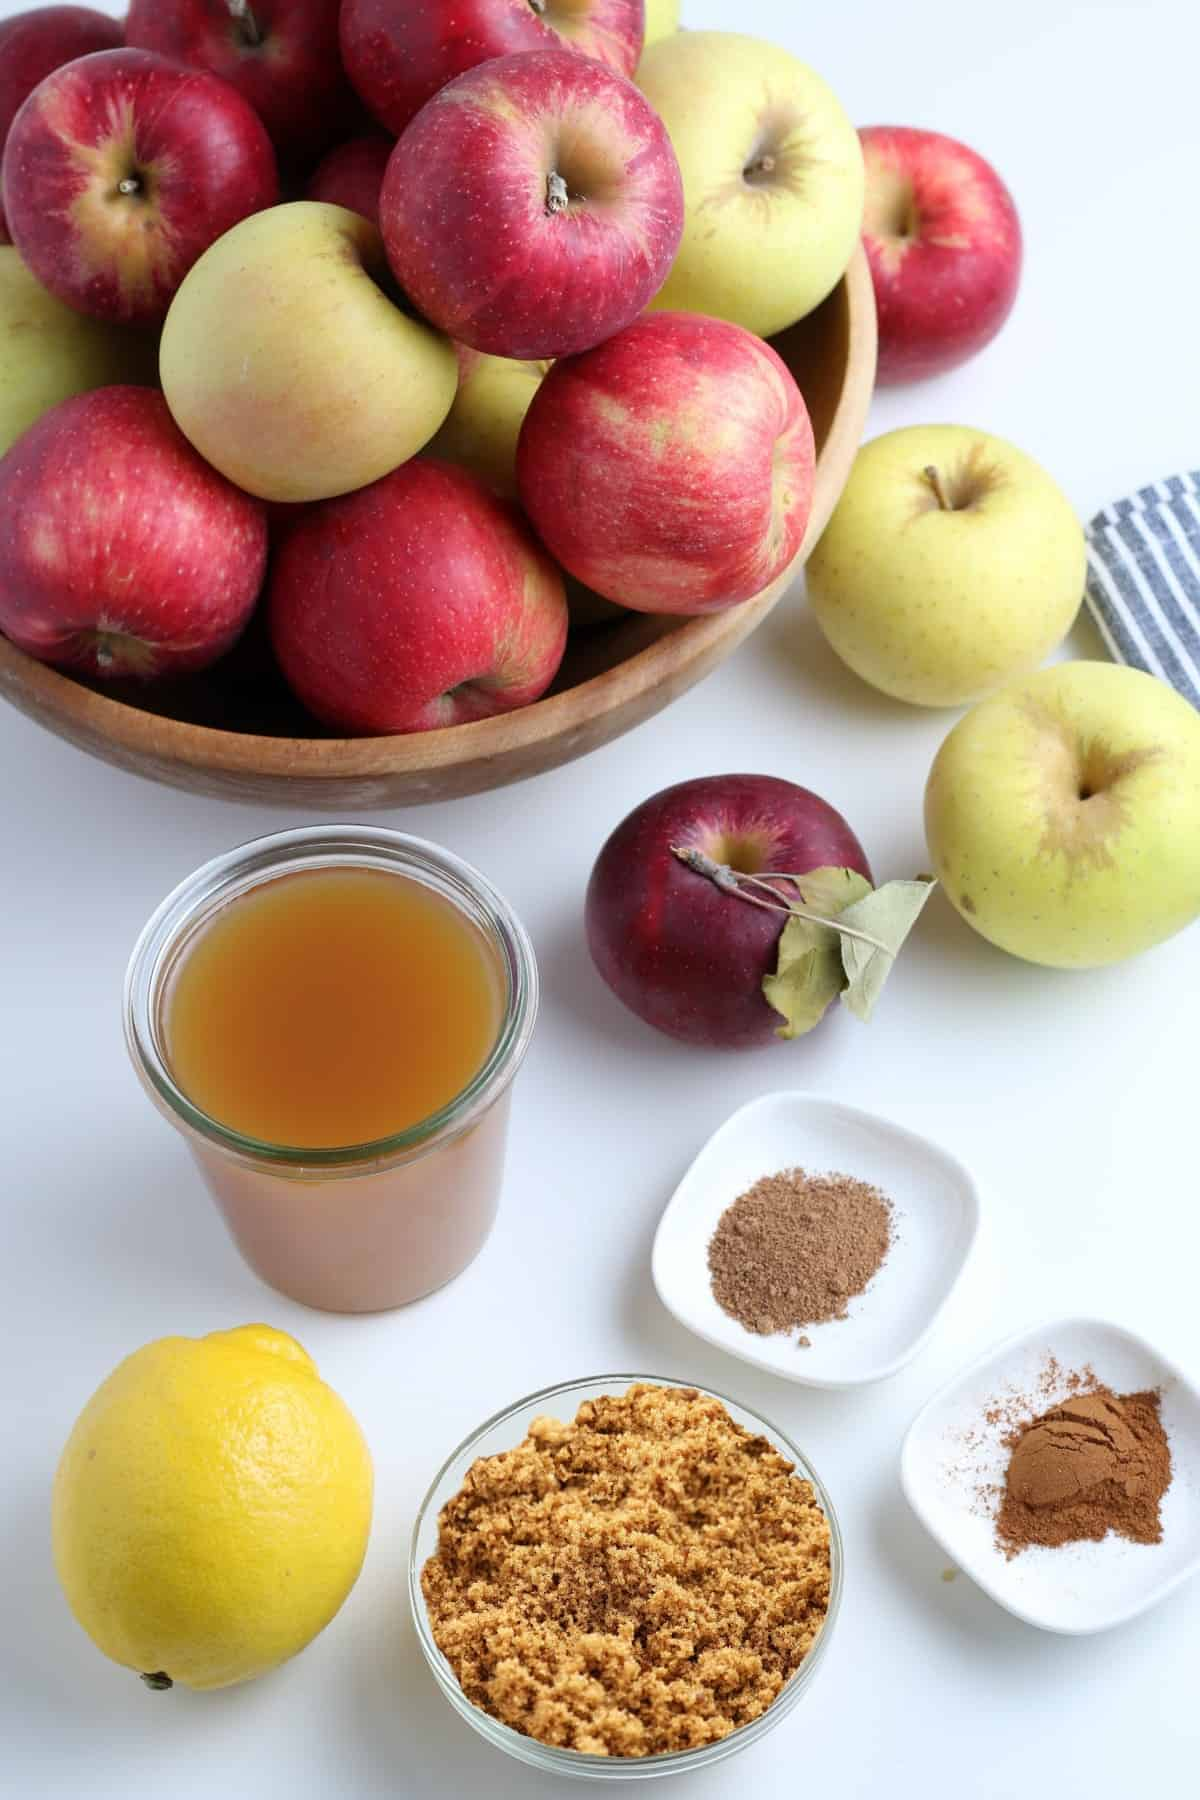 All of the ingredients to make homemade applesauce.